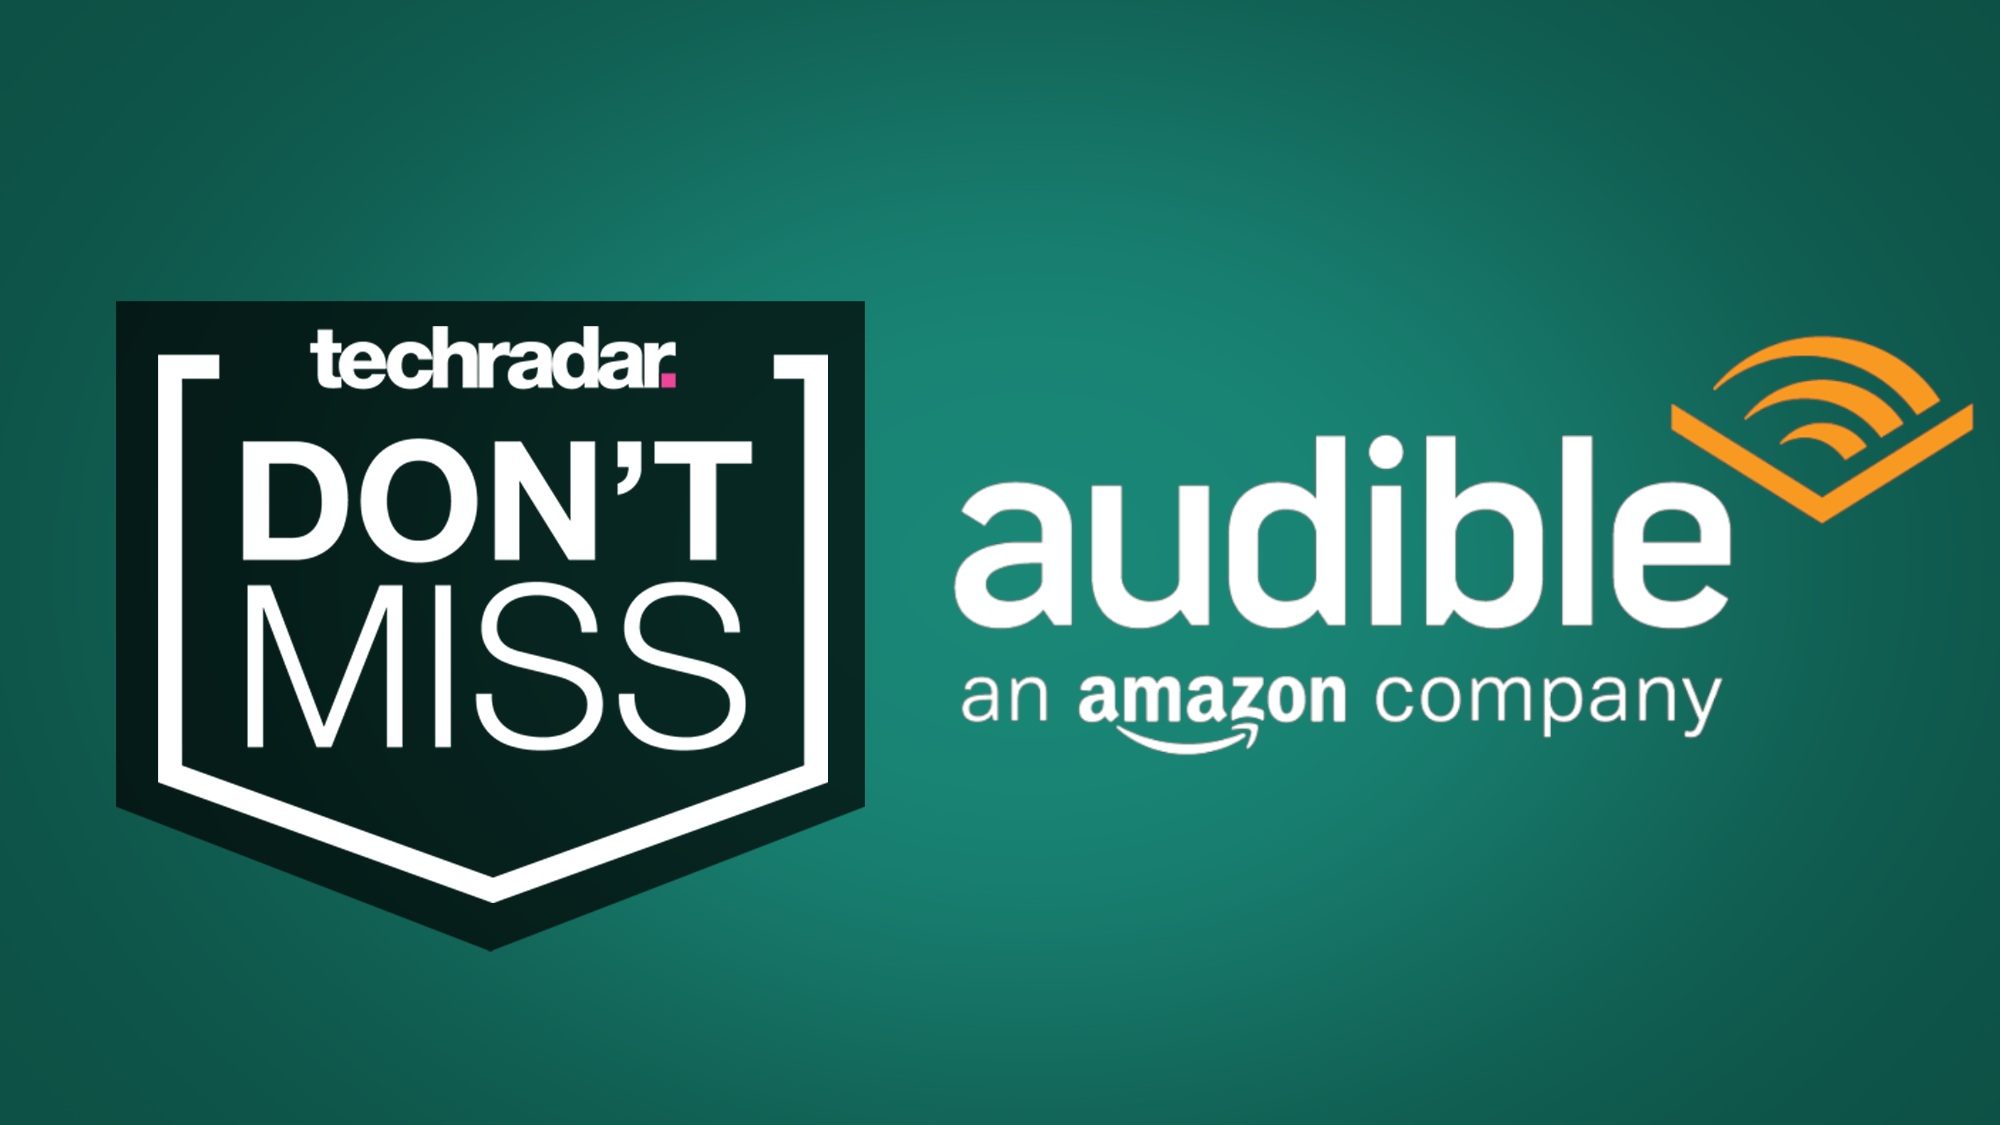 Audible offers hundreds of free audiobooks for homeschooling due to coronavirus school closures